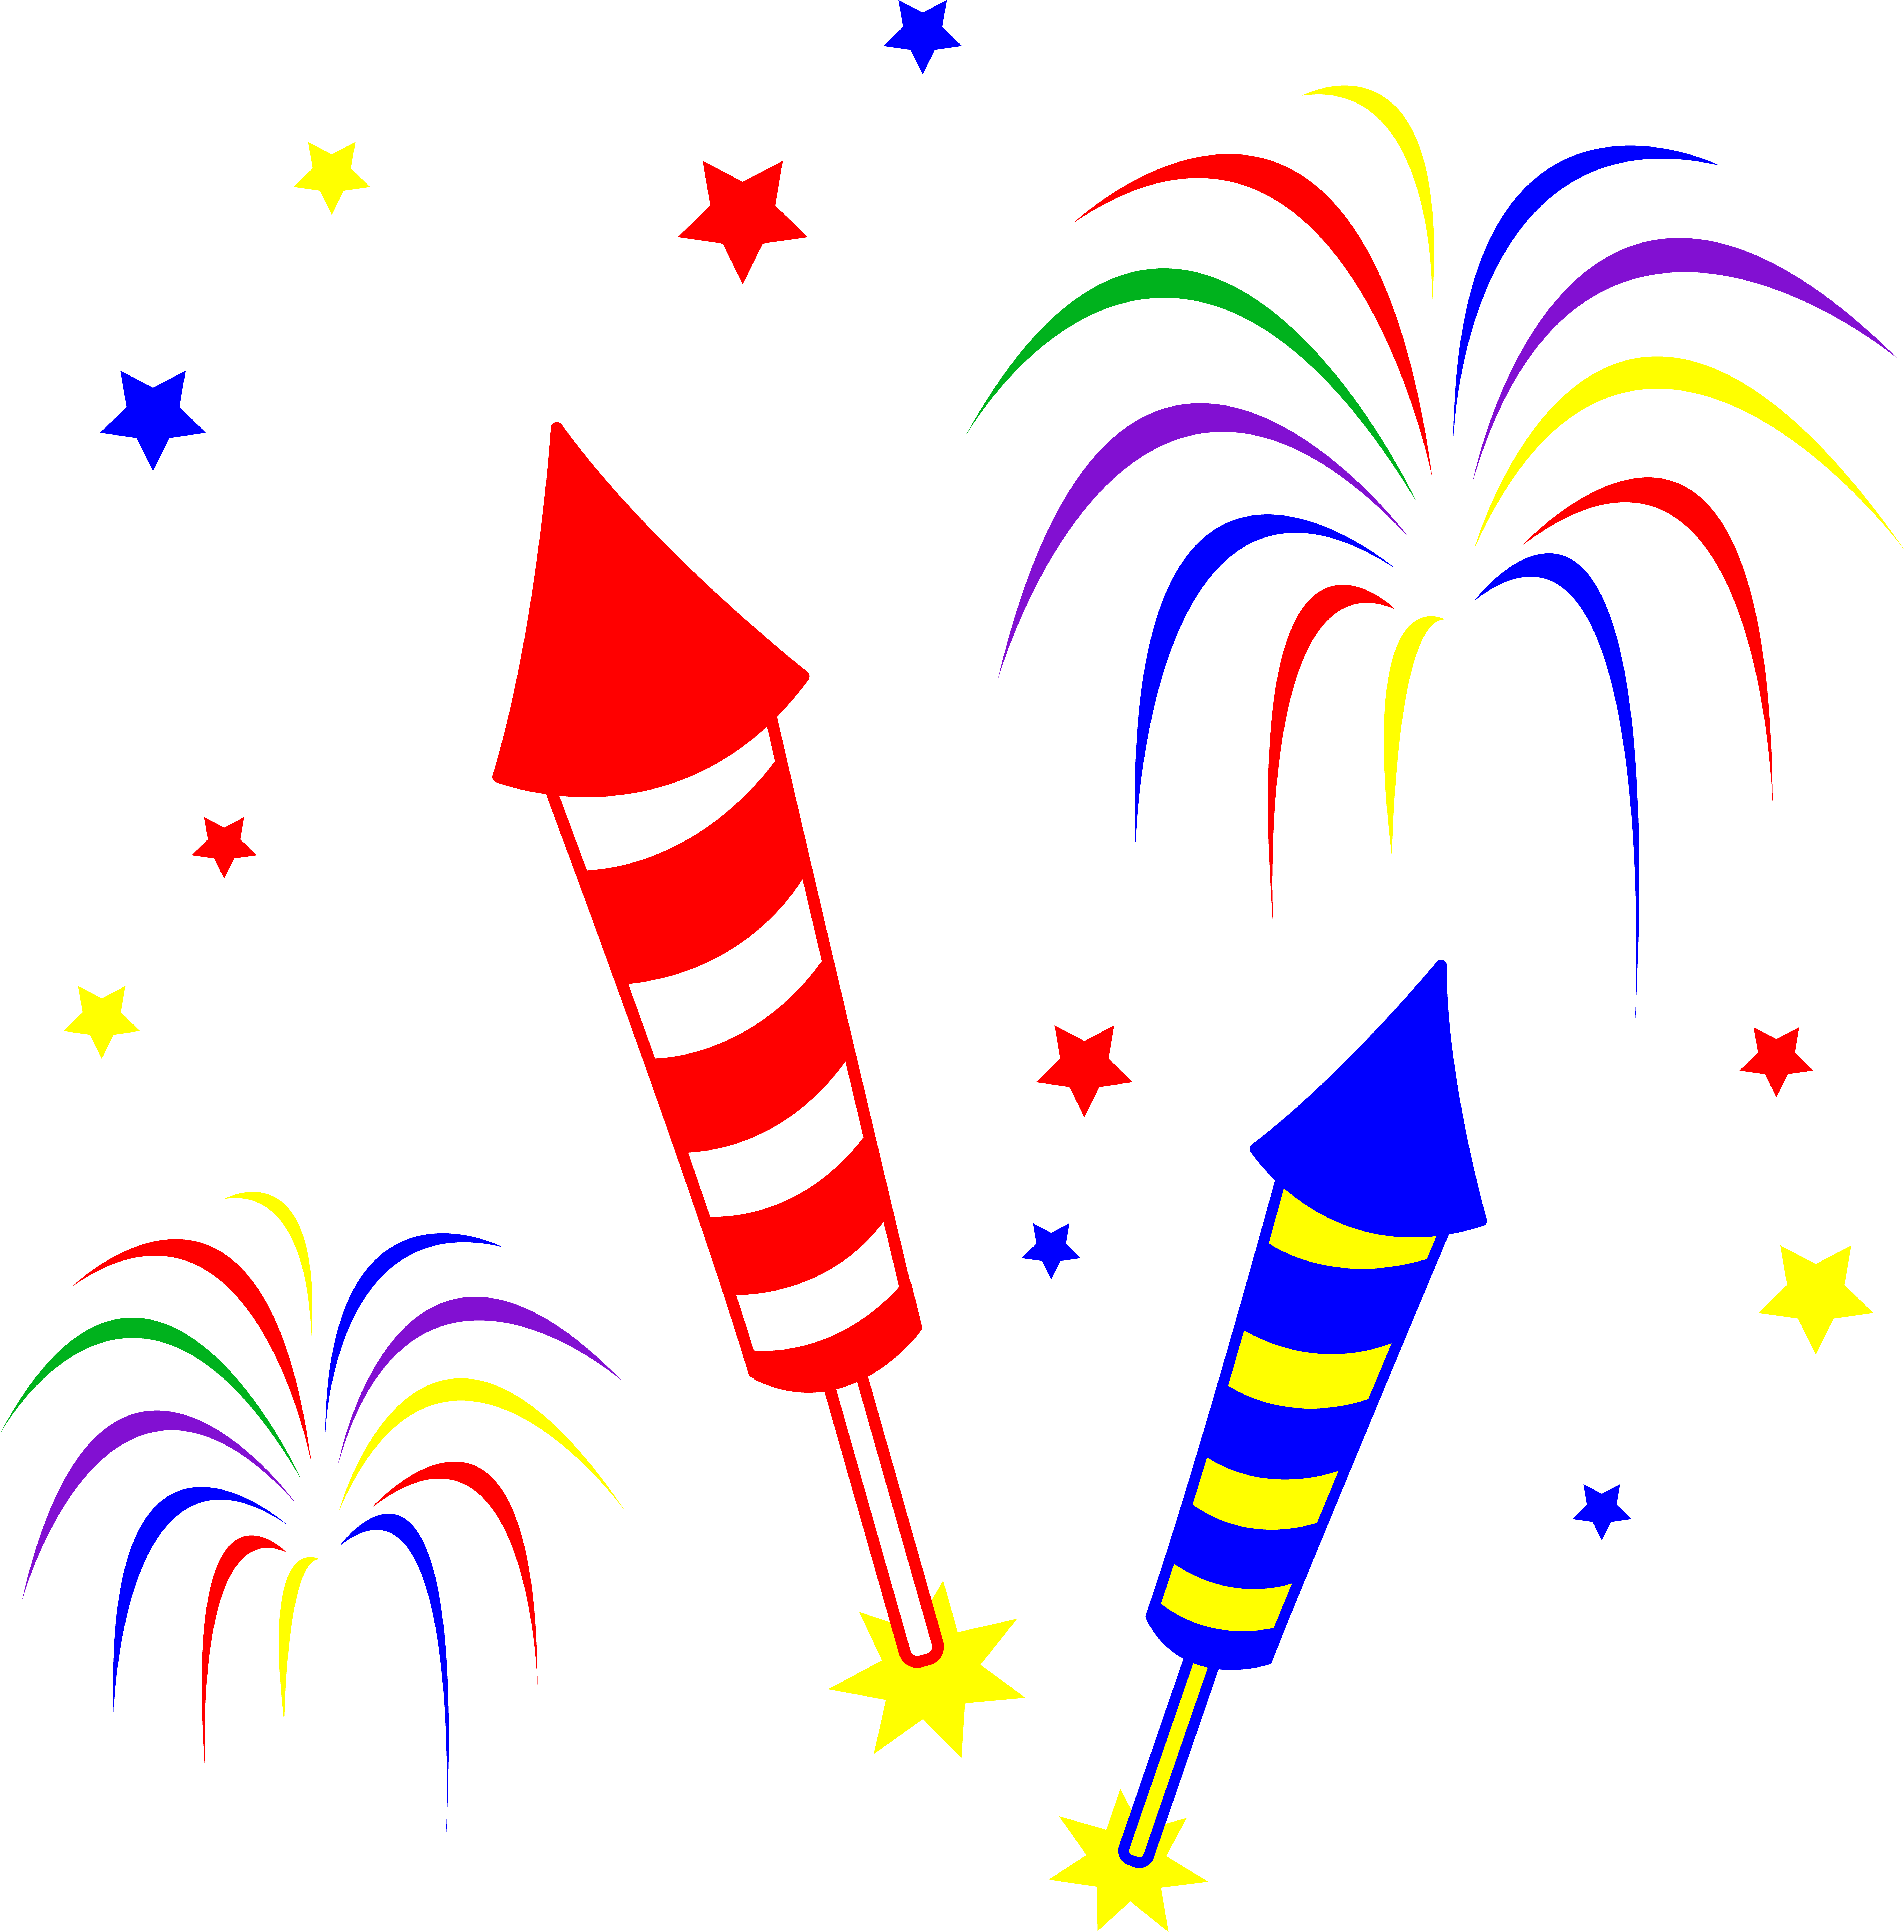 New years fireworks clipart banner royalty free library Firework Cartoon Clipart | Free download best Firework Cartoon ... banner royalty free library